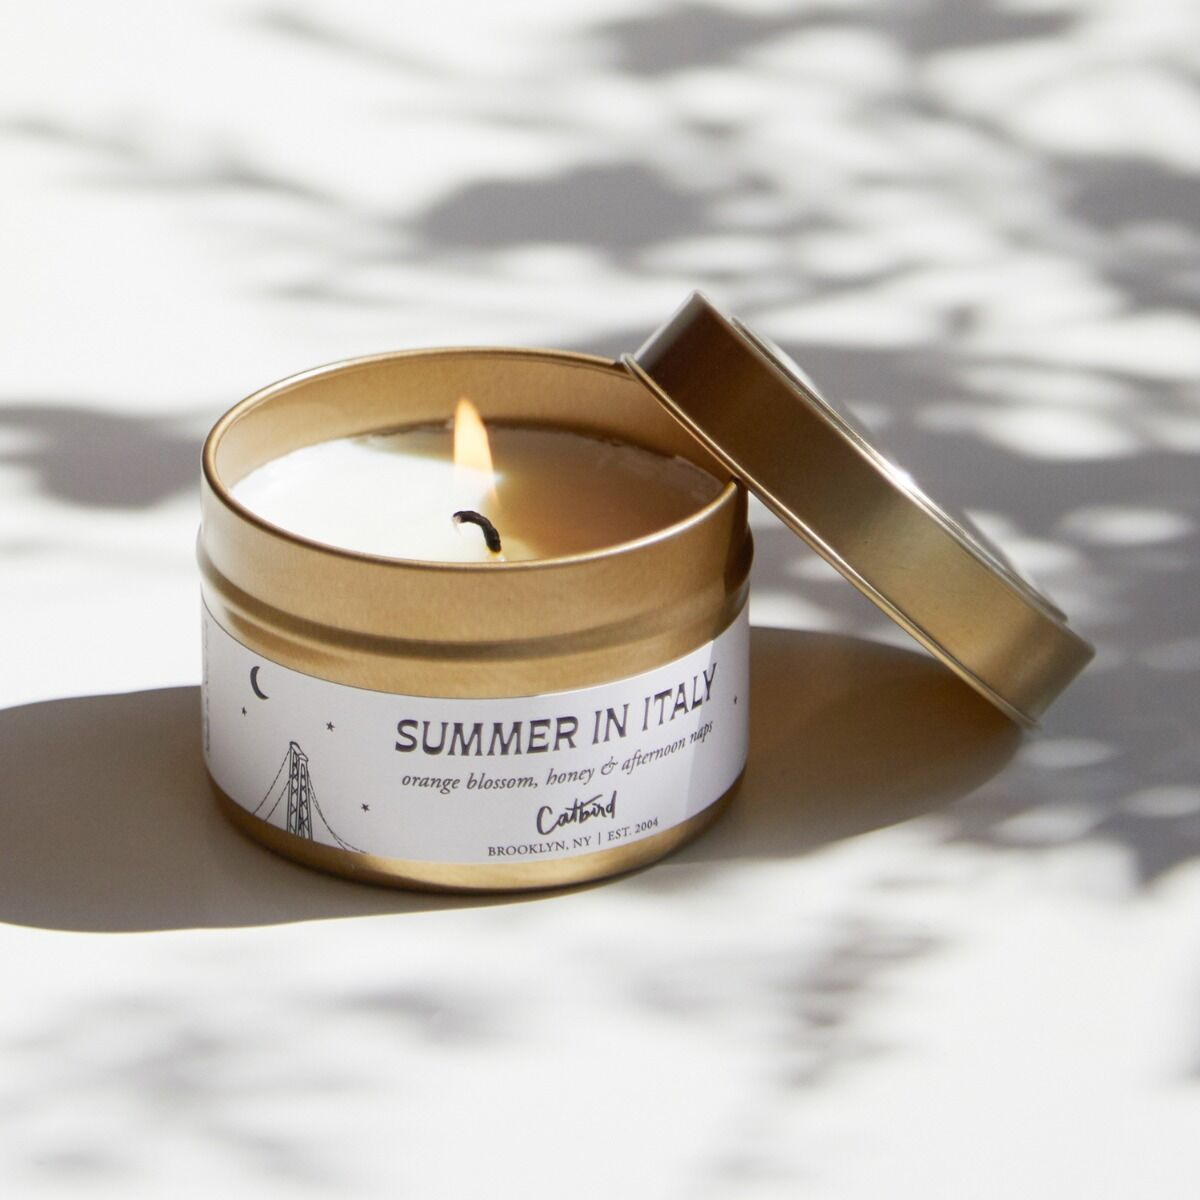 Summer in Italy Travel Candle image